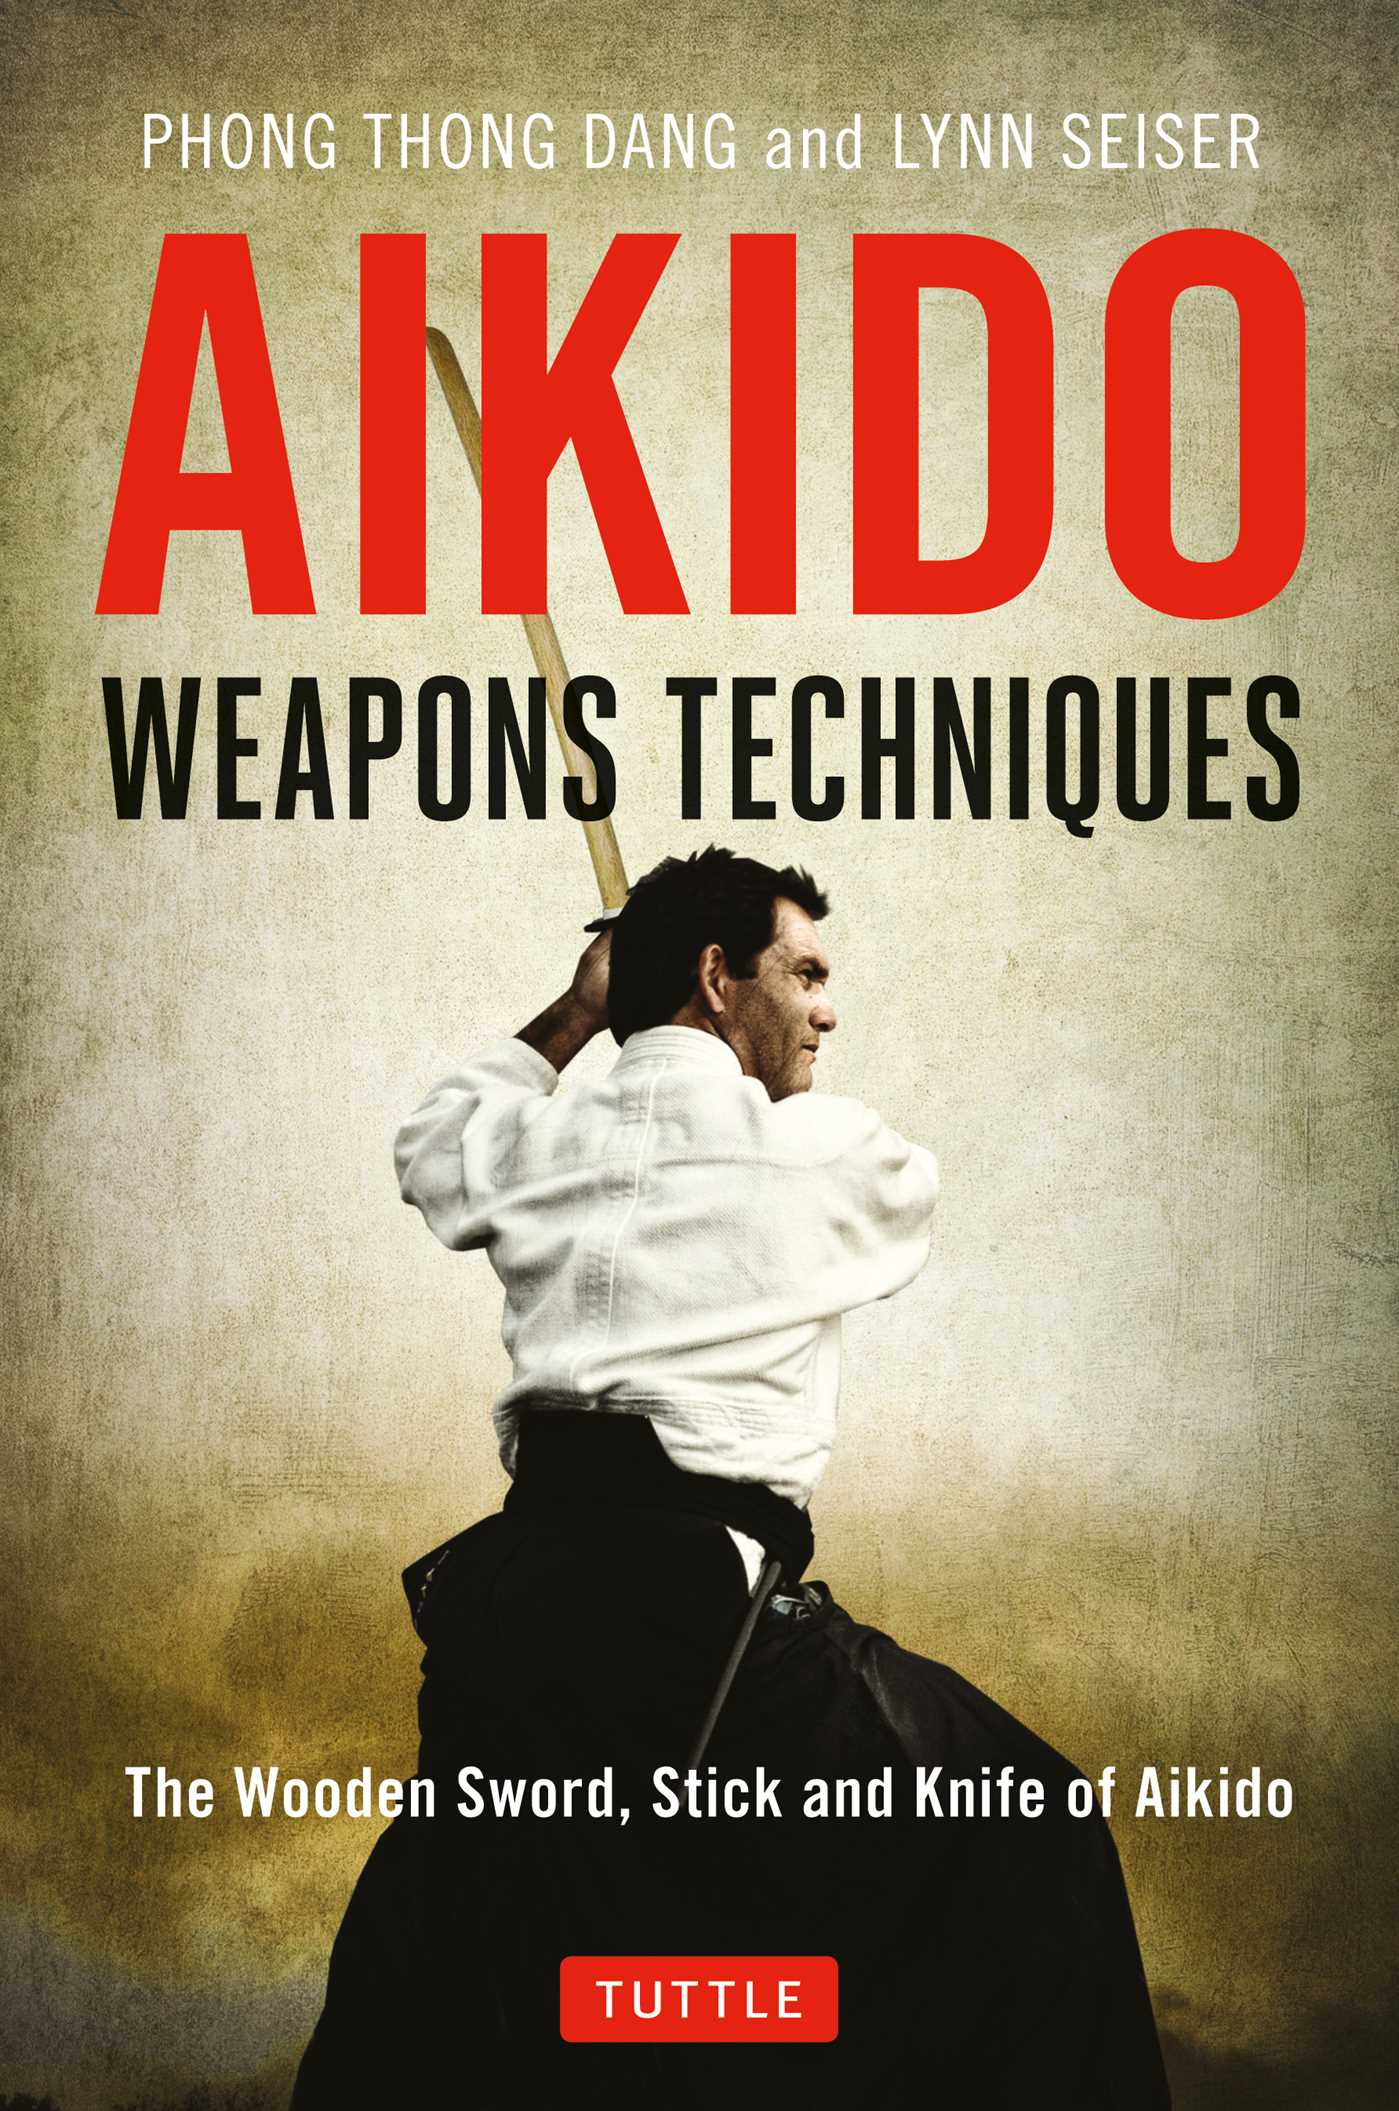 Aikido weapons techniques 9784805314296 hr